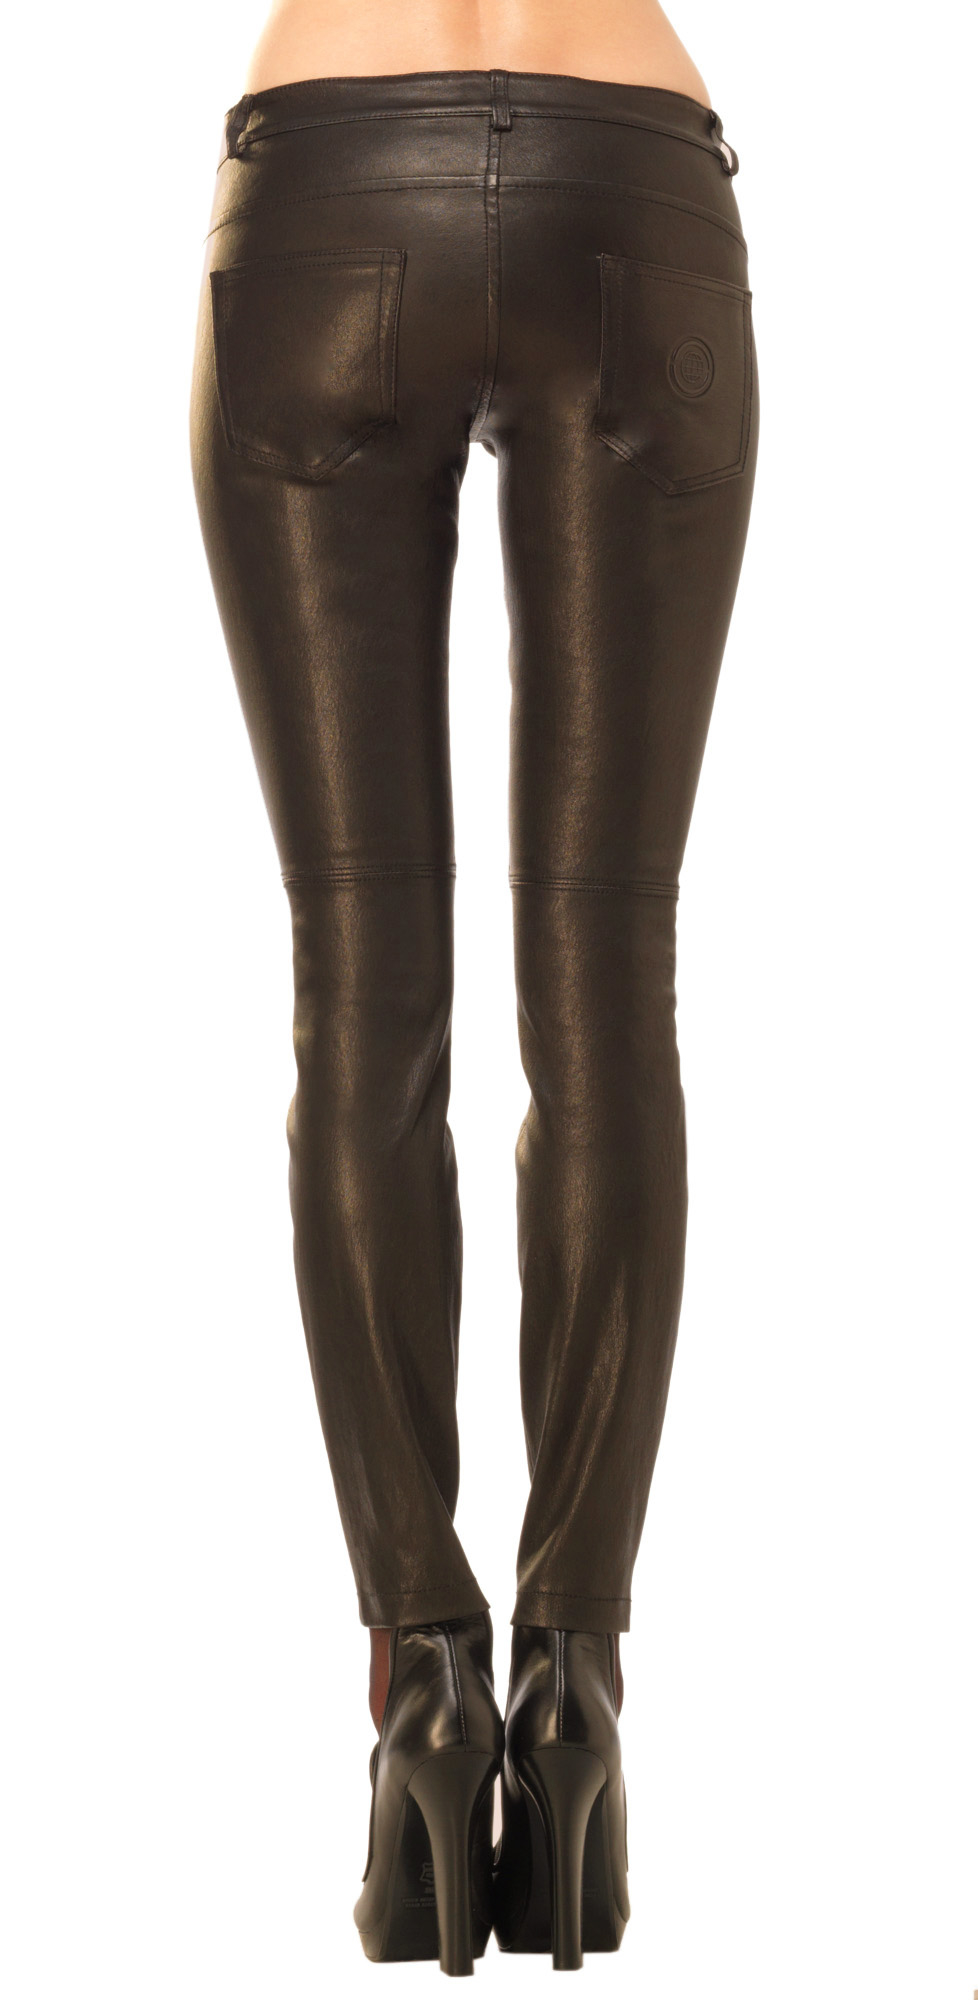 The leather is soft and beautiful and they provide a generous length, I am quite short so I actually tuck the pants underneath to make them the right height for me. I would recommend sizing down, I am normally an 8 (AUS sizing) in pants and purchased the 0 and they are a perfect fit.